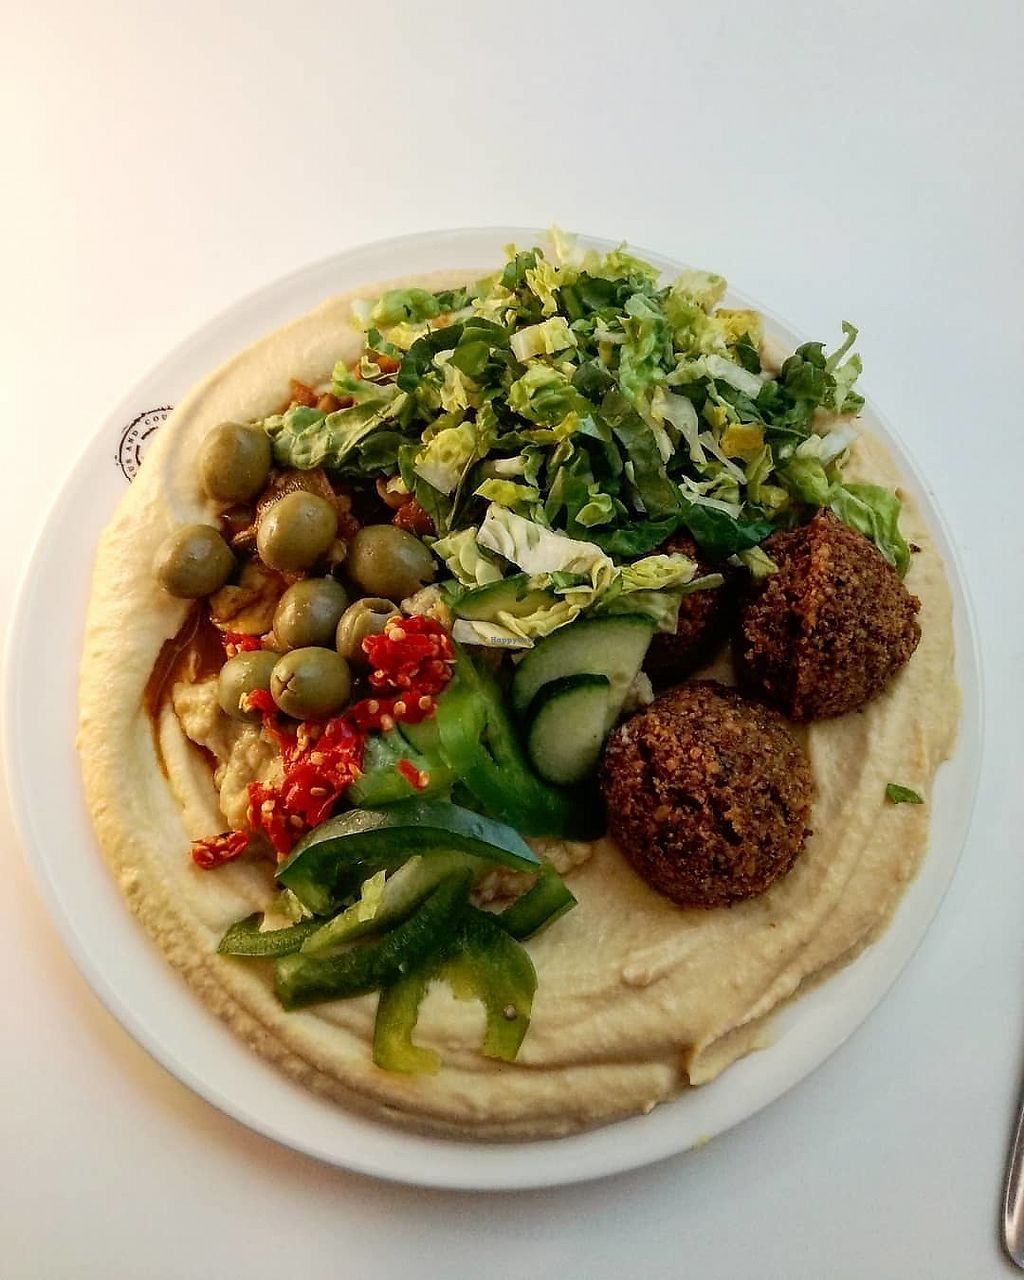 """Photo of Hummus and Couscous Bar - Petržalka  by <a href=""""/members/profile/ZdeNka"""">ZdeNka</a> <br/>vegetarian mix hummus <br/> February 24, 2018  - <a href='/contact/abuse/image/108755/363172'>Report</a>"""